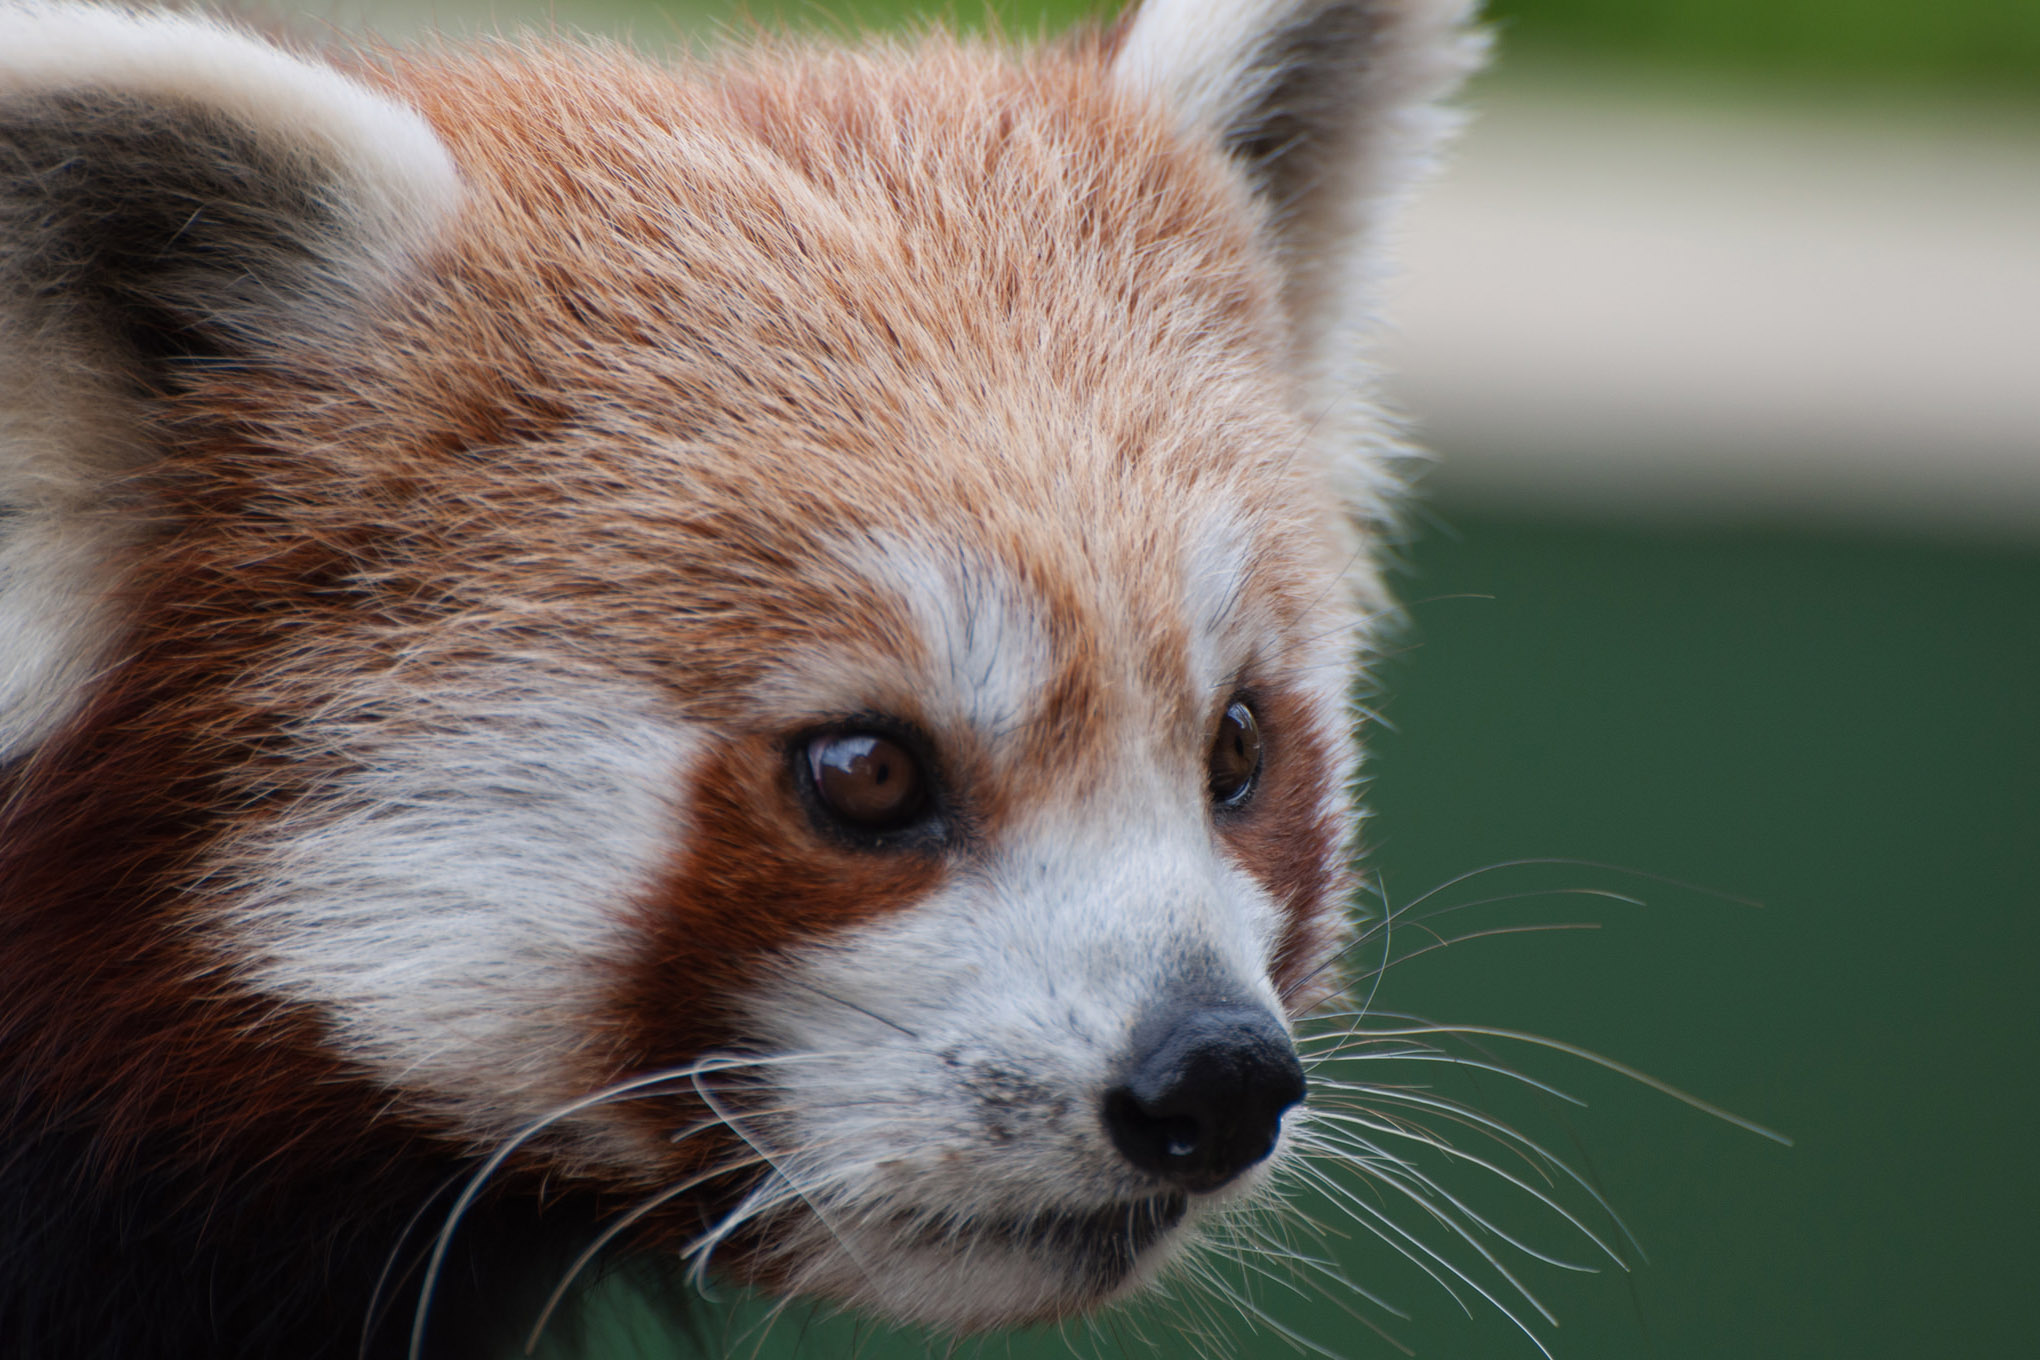 A close up image of a Red Panda's face. It shows the different textured fur on its face, as well as its whiskers.